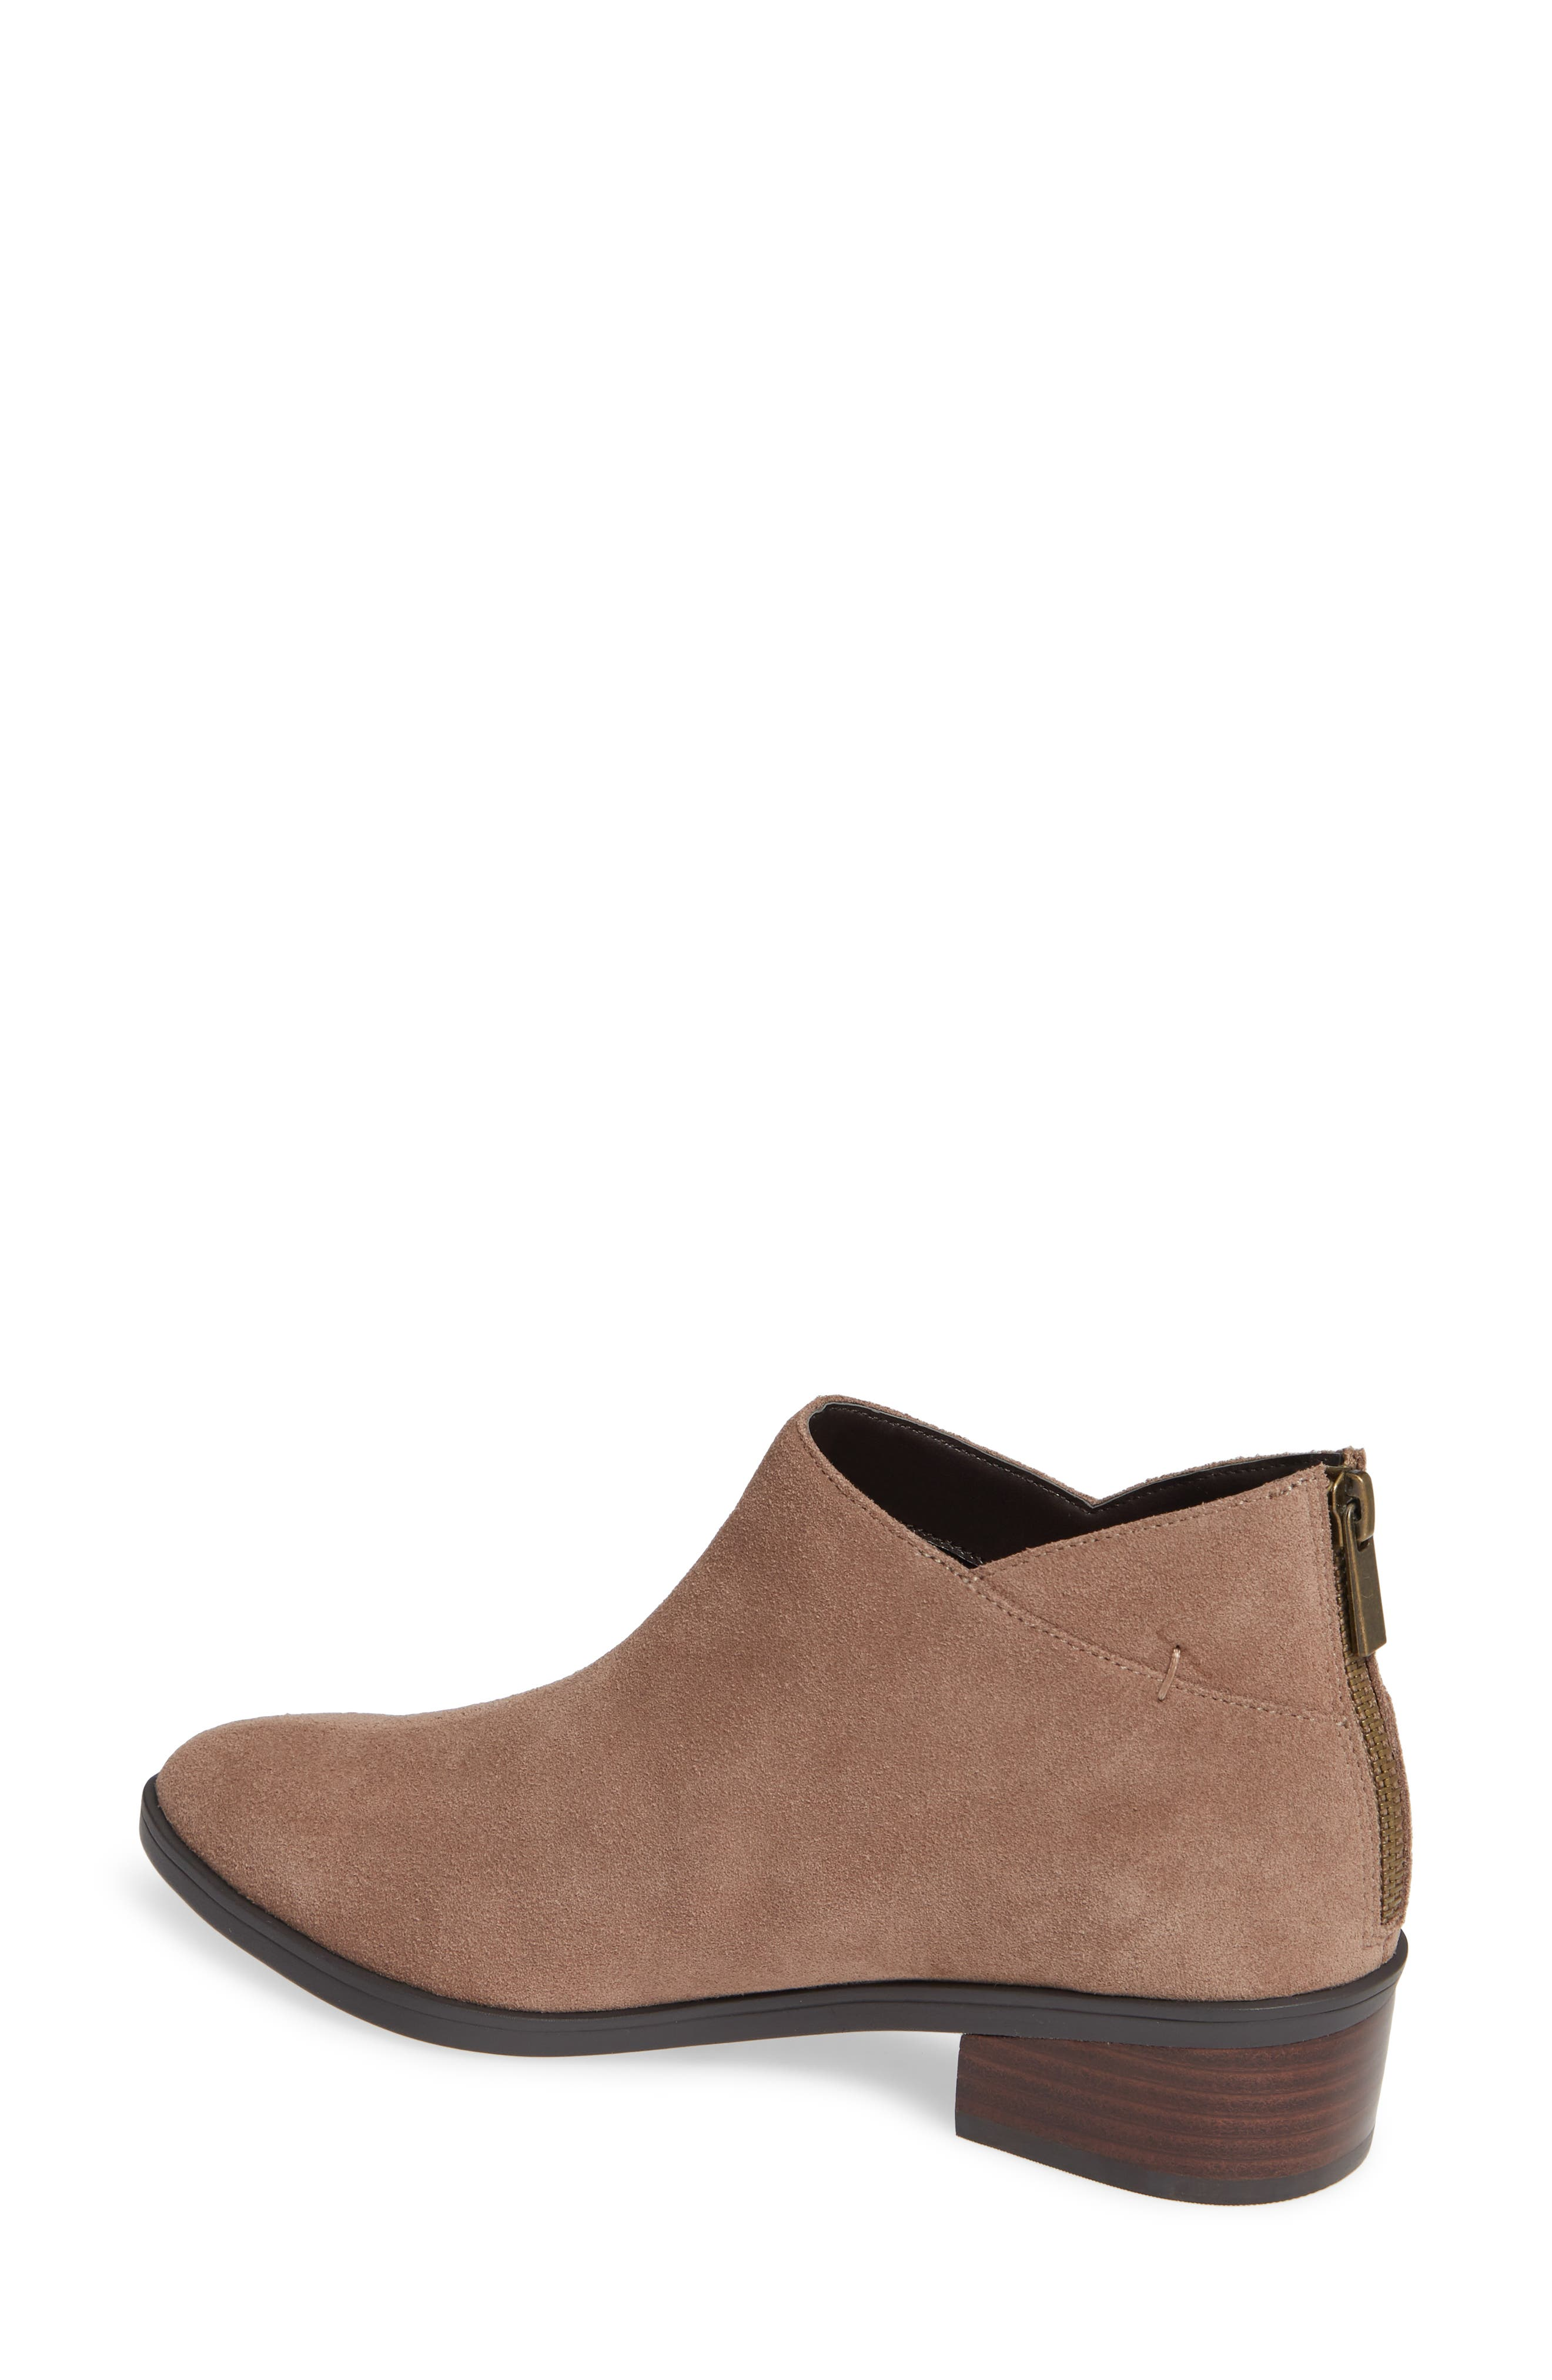 Haven Ankle Bootie,                             Alternate thumbnail 2, color,                             ALMOND SUEDE